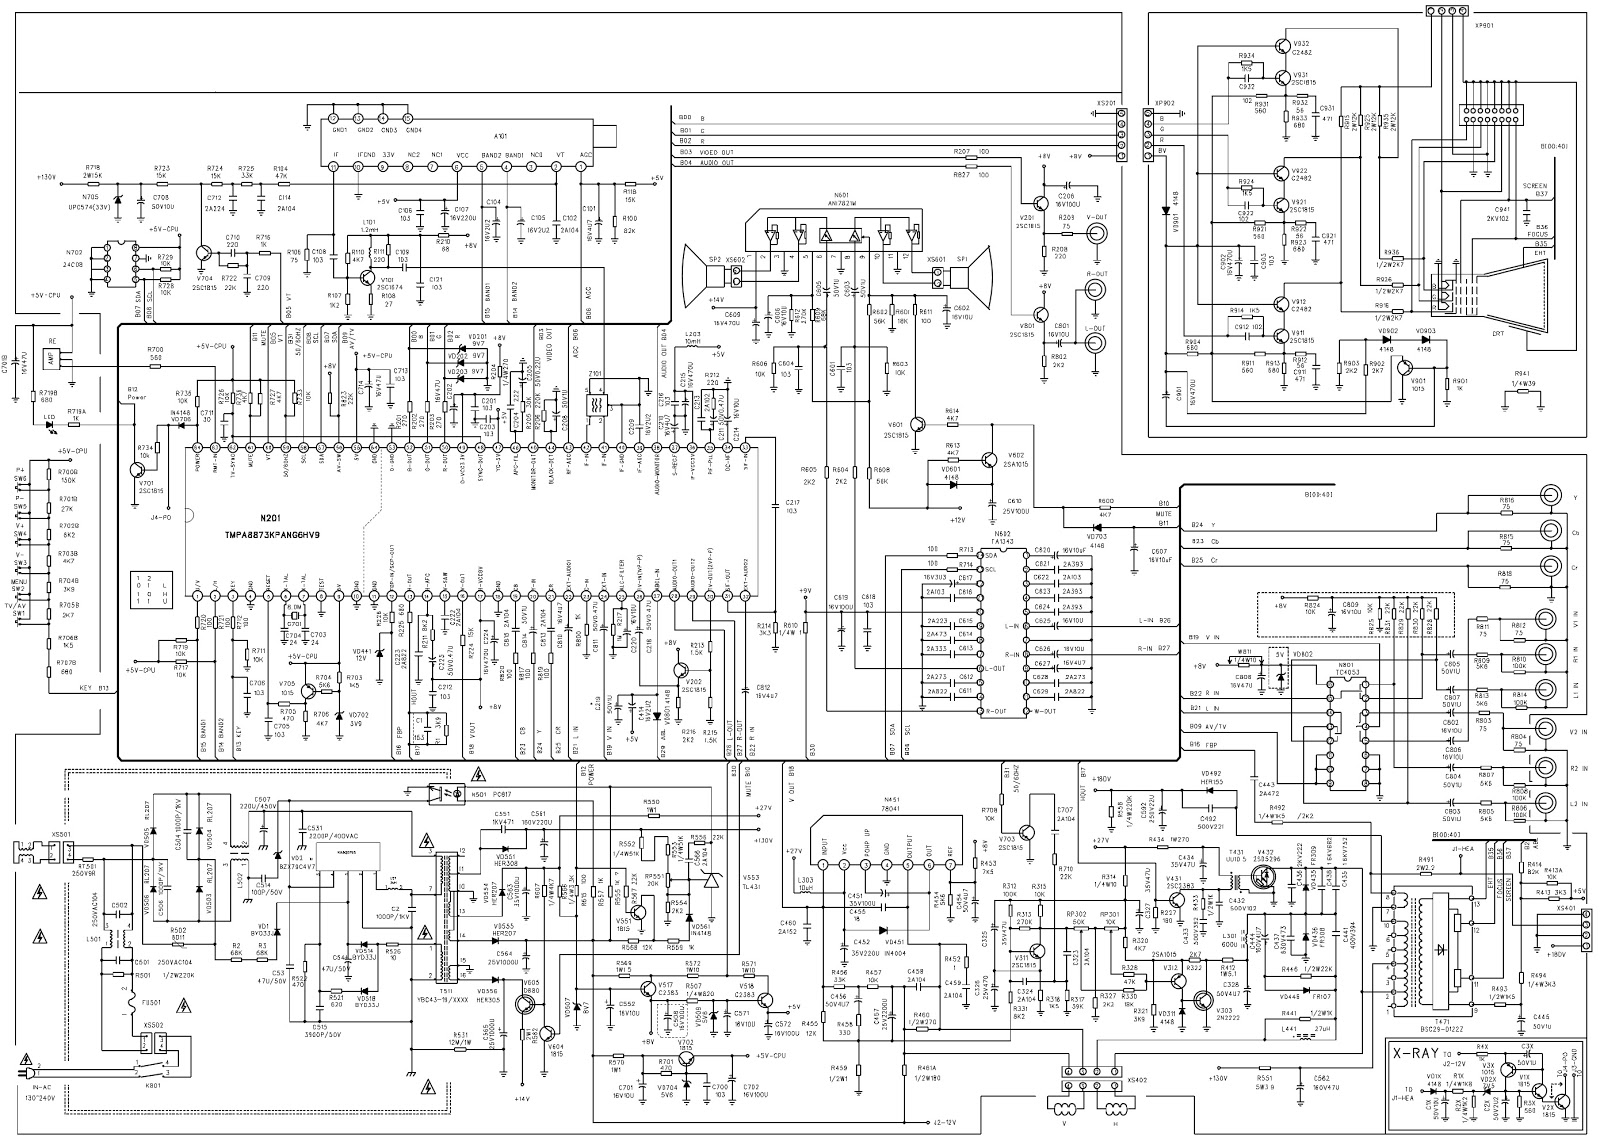 Palntsc Crt Tv Circuit Diagram And Pwb Schematic Diagrams - Wiring